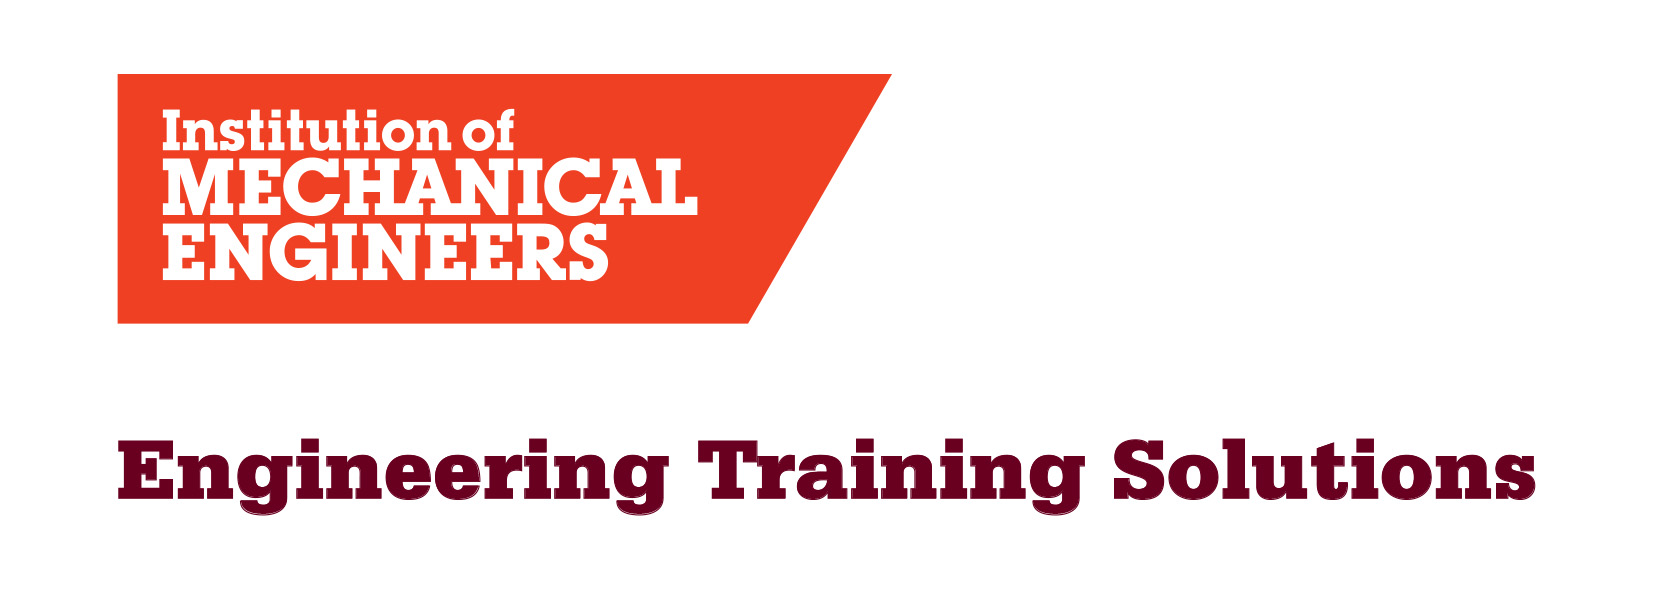 IMechE Engineering Training Solutions